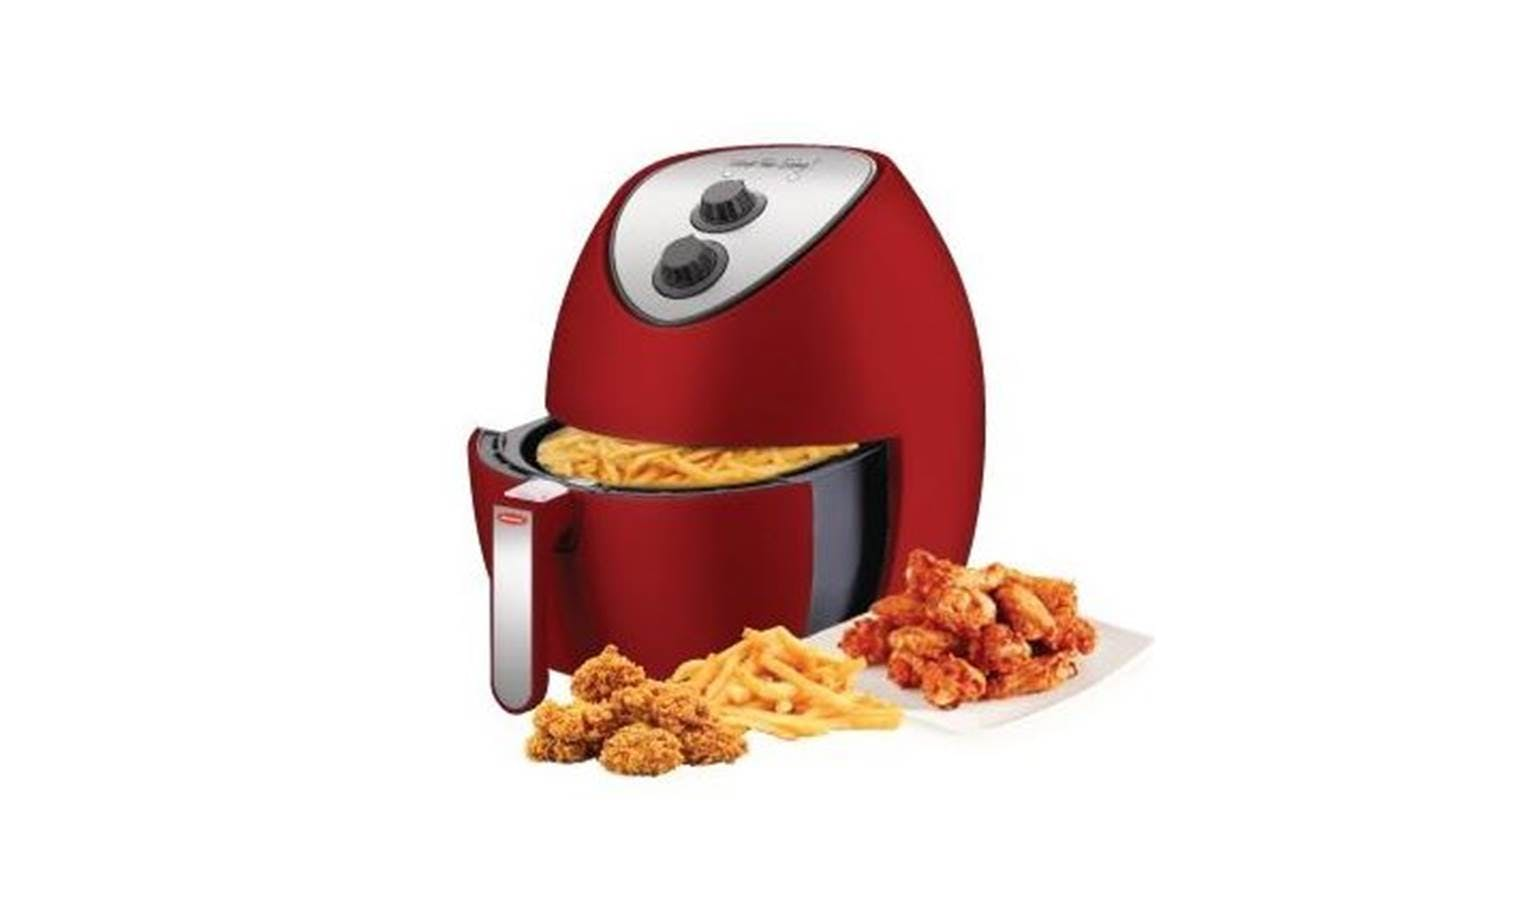 EuropAce EAF5321S 3.2L Air Fryer - Red